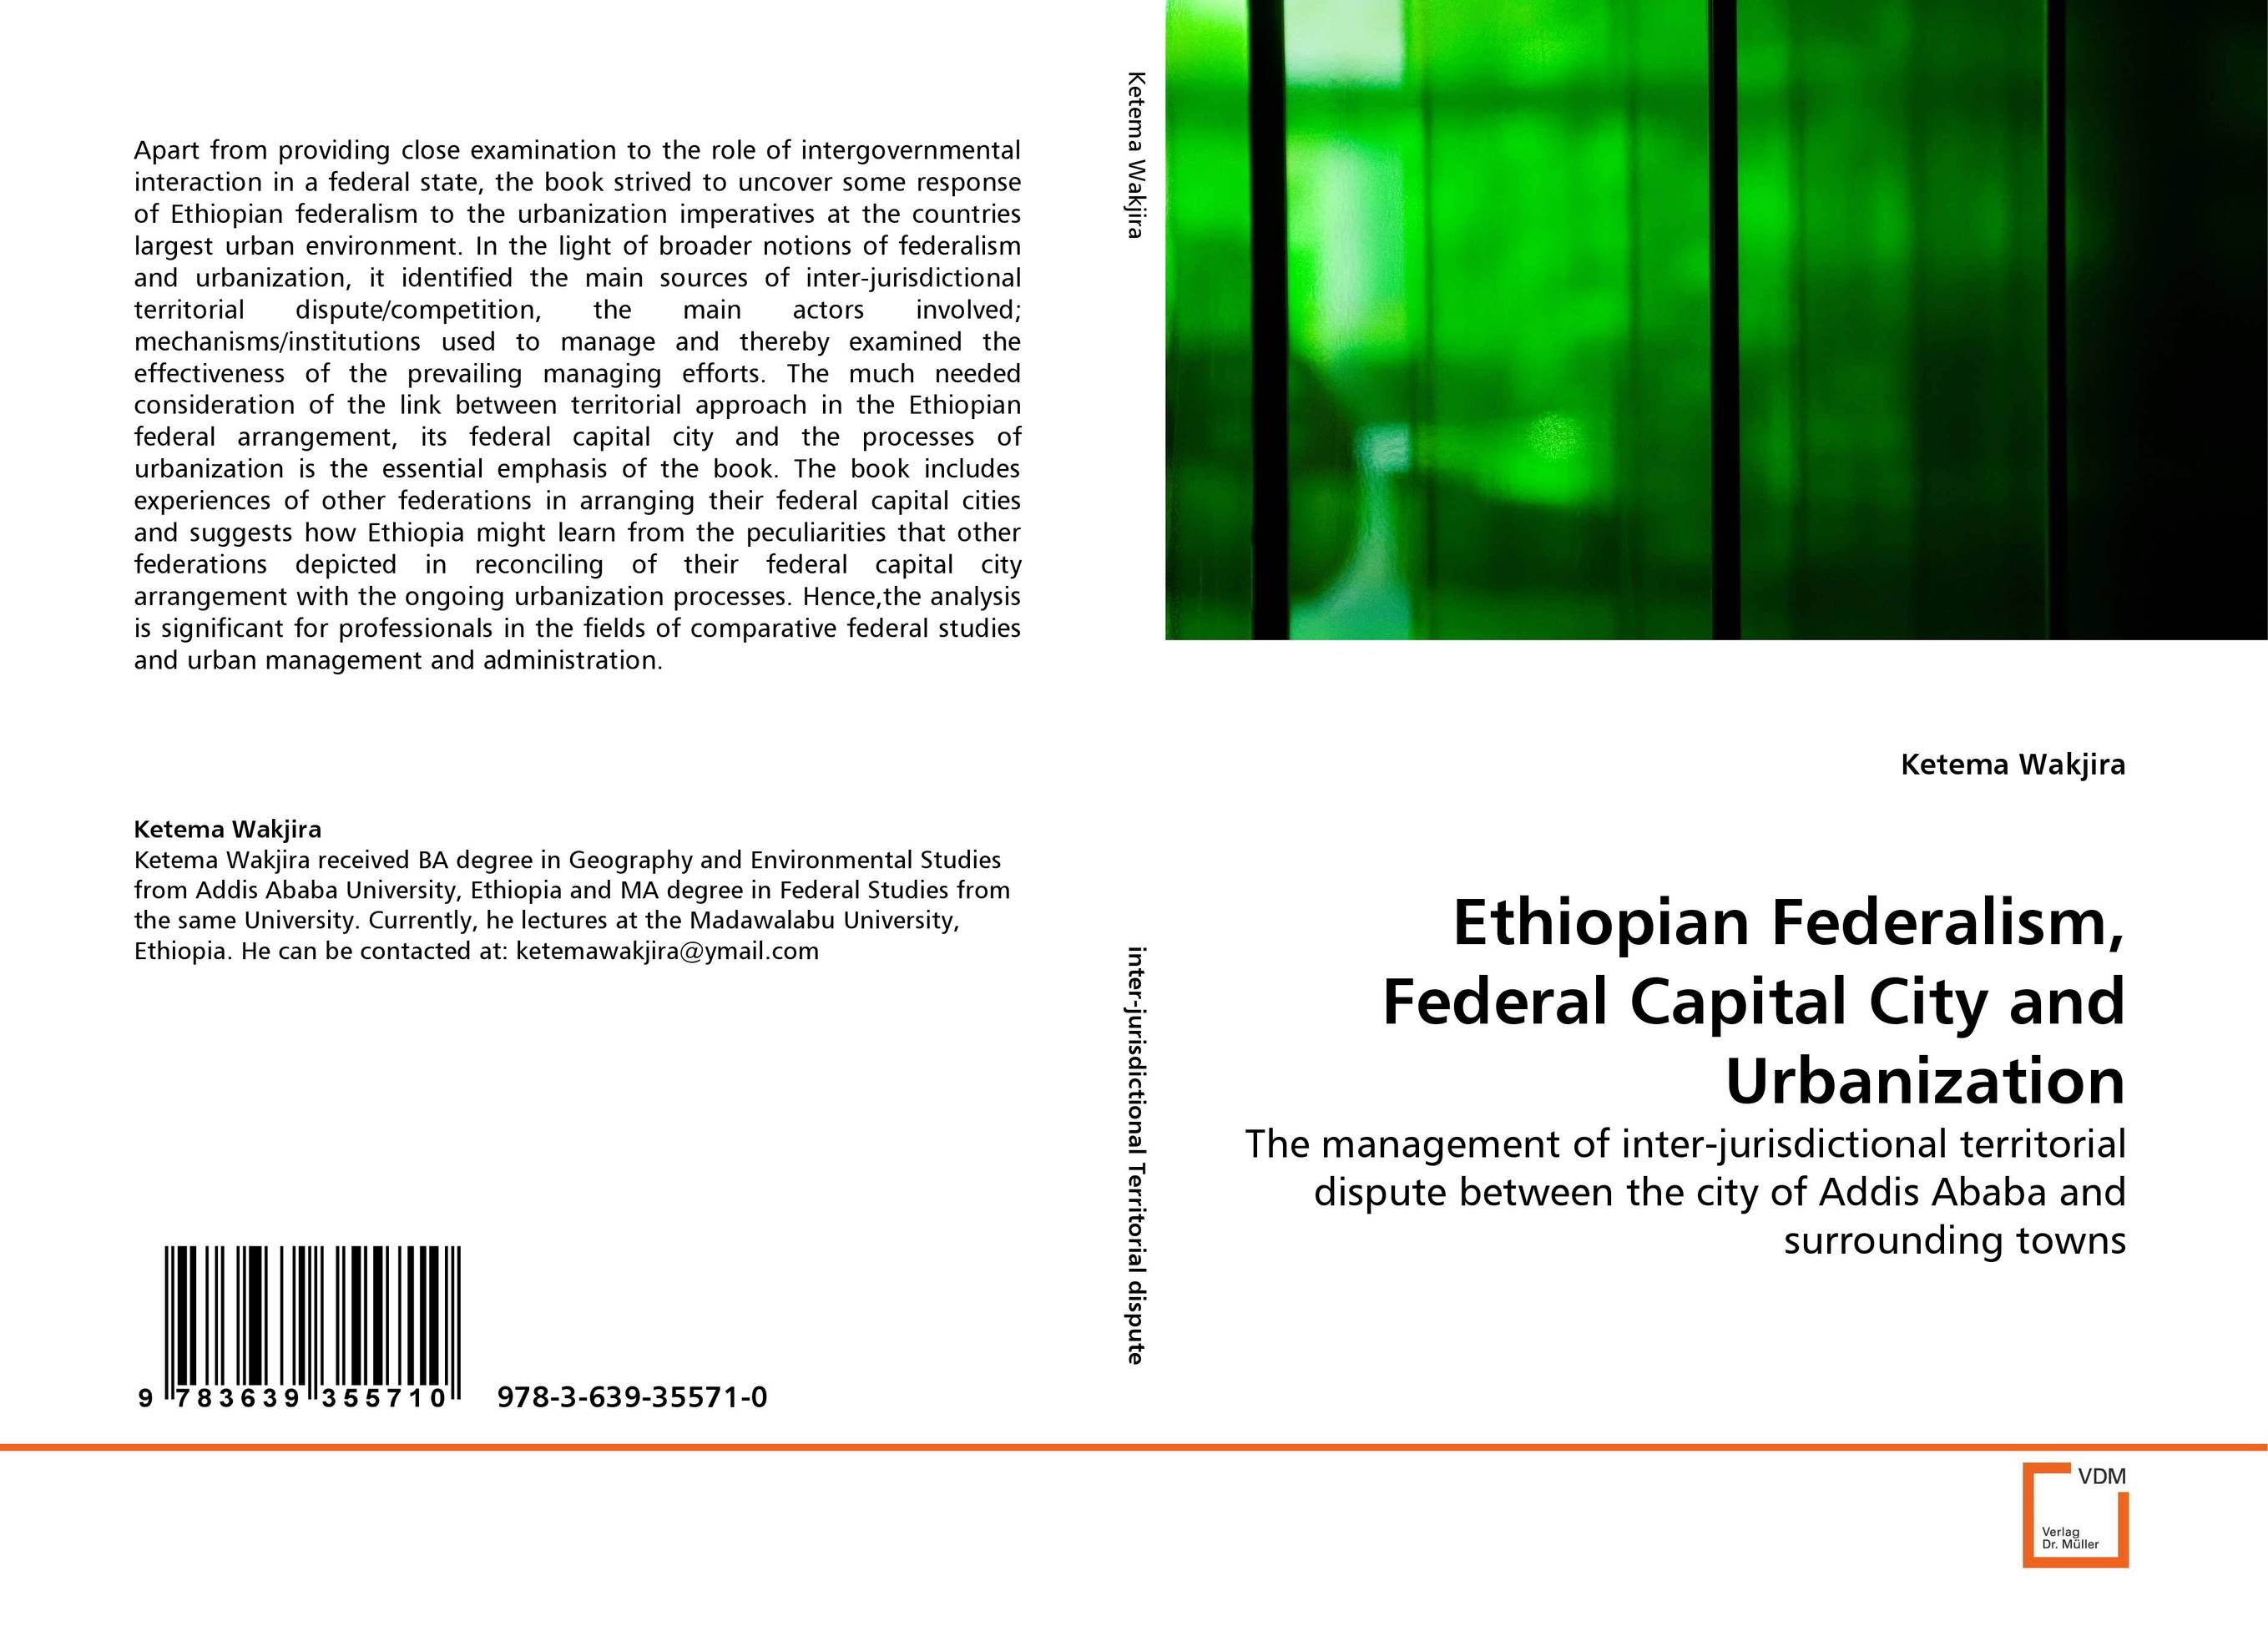 Ethiopian Federalism, Federal Capital City and Urbanization federalism and territorial cleavages